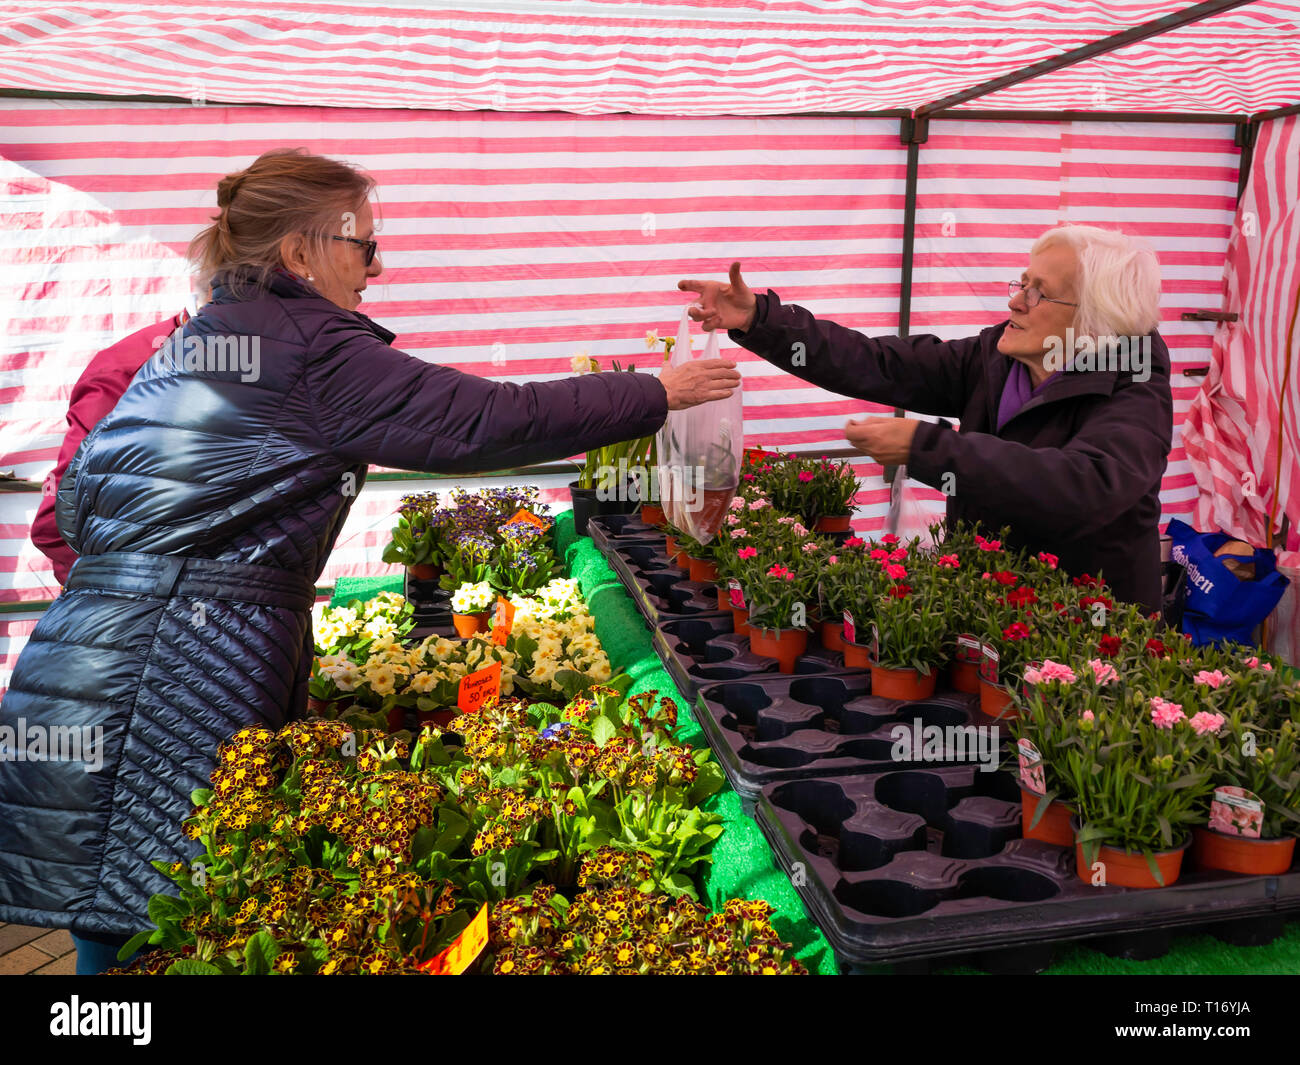 A lady gardener buying Siberian Tiger plants Muscari Armeniacum at a weekly market flower stall  in  North Yorkshire Stock Photo